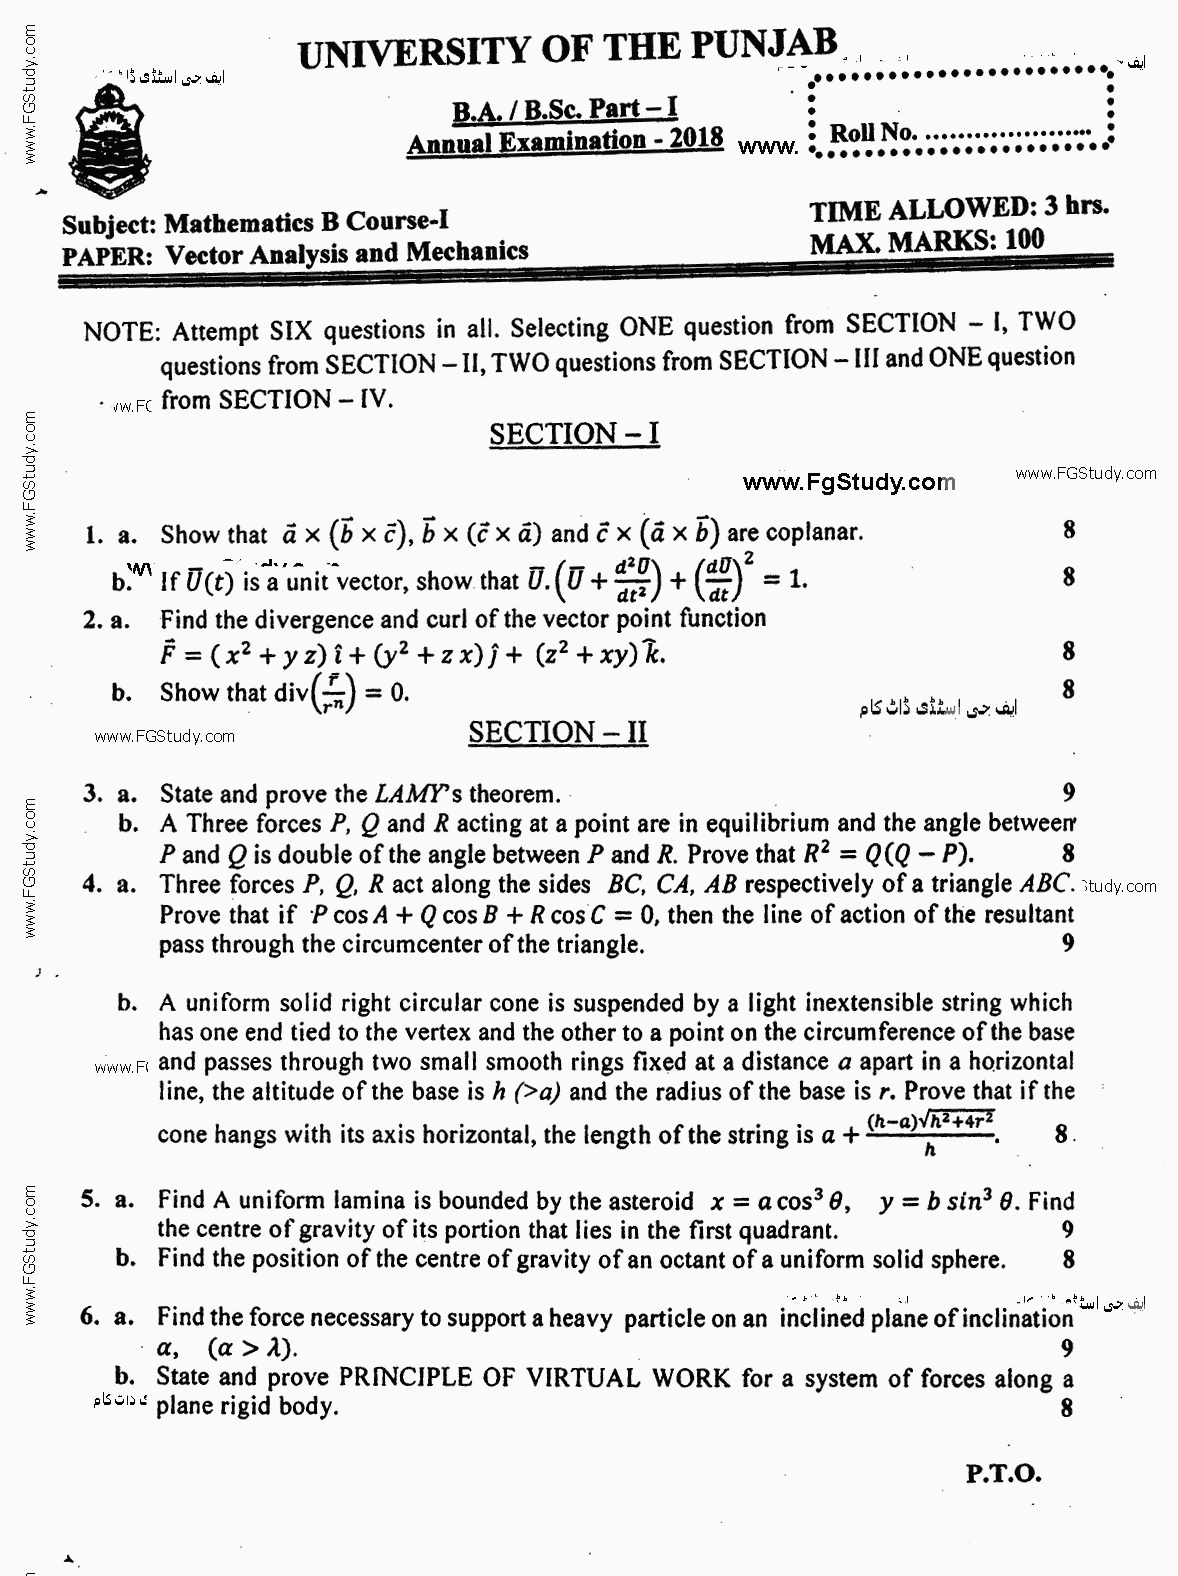 Mathematics General Calculus Differential And Integral Calculus BA Part 1 Past Papers 2018